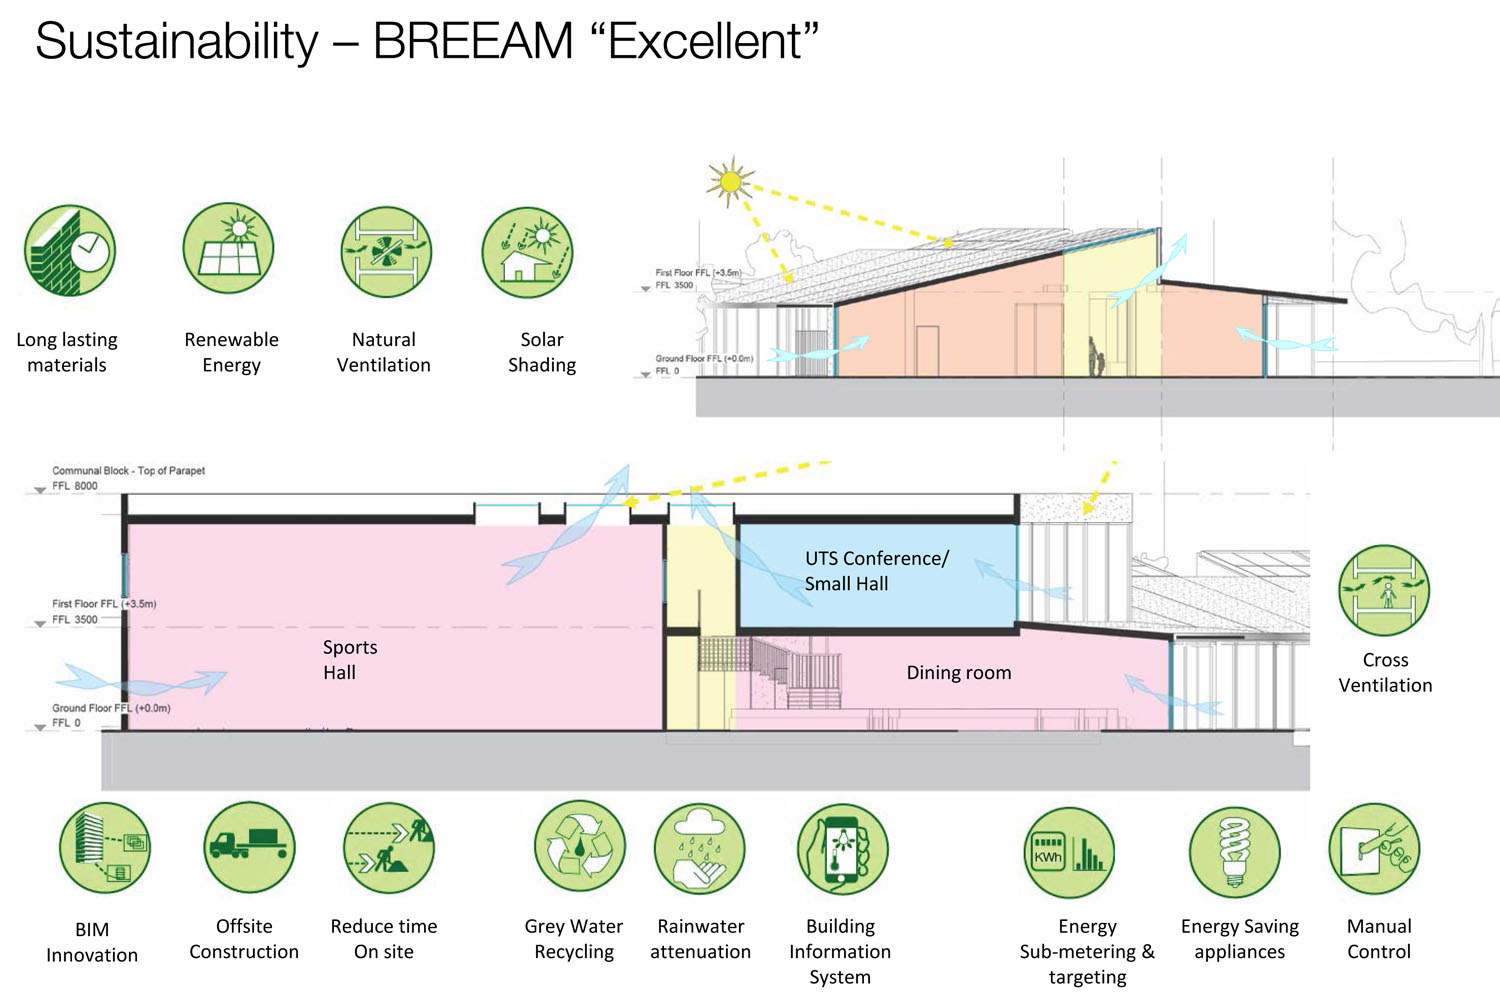 sustainability BREEAM Excellent - University of Cambridge Primary School by Marks Barfield Architects